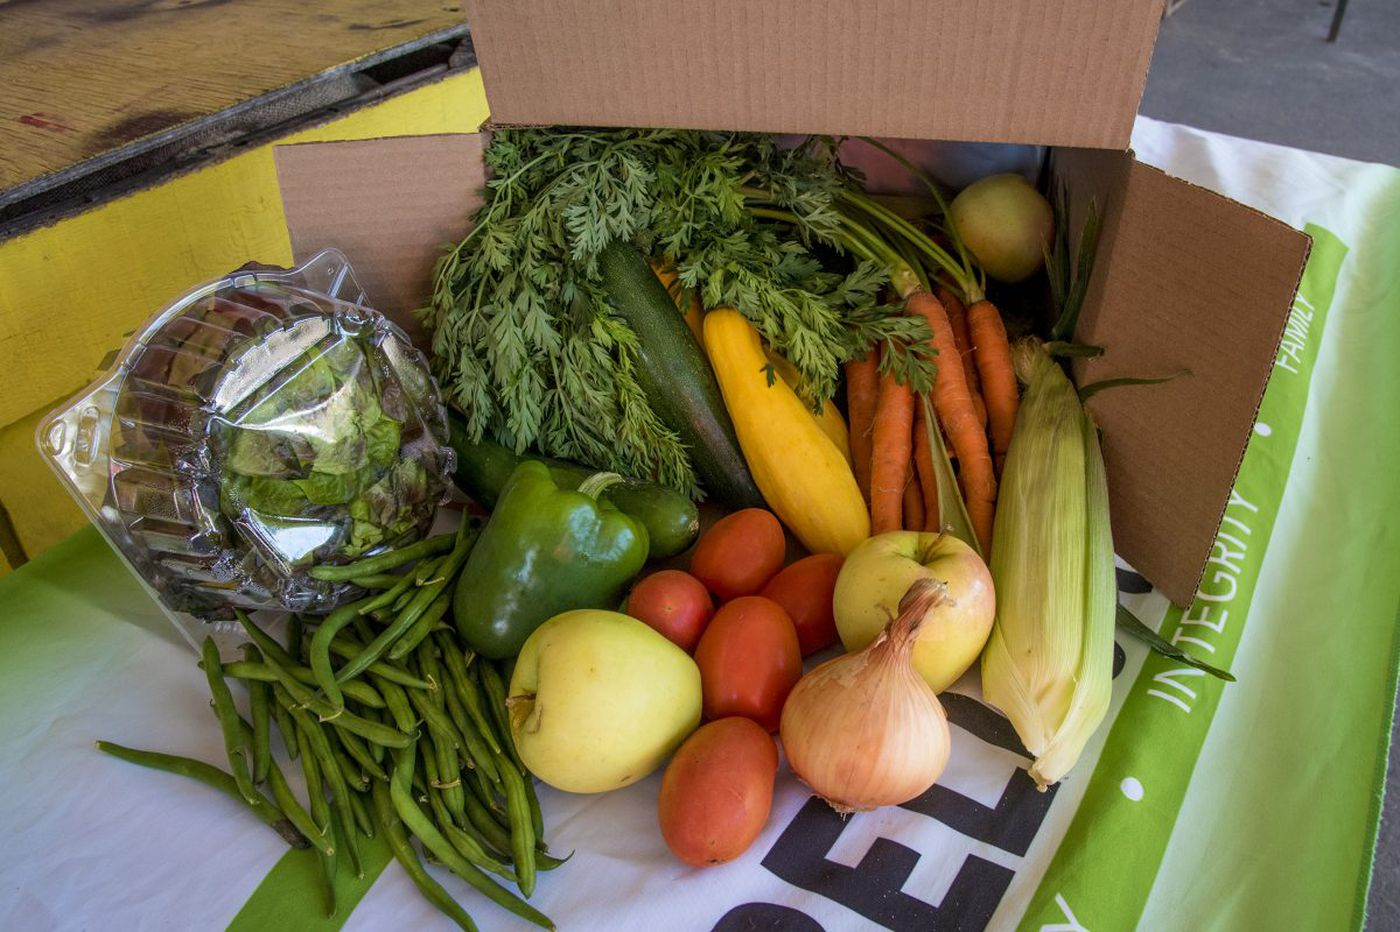 Call it the Amazon effect: A farmers market delivered in a box